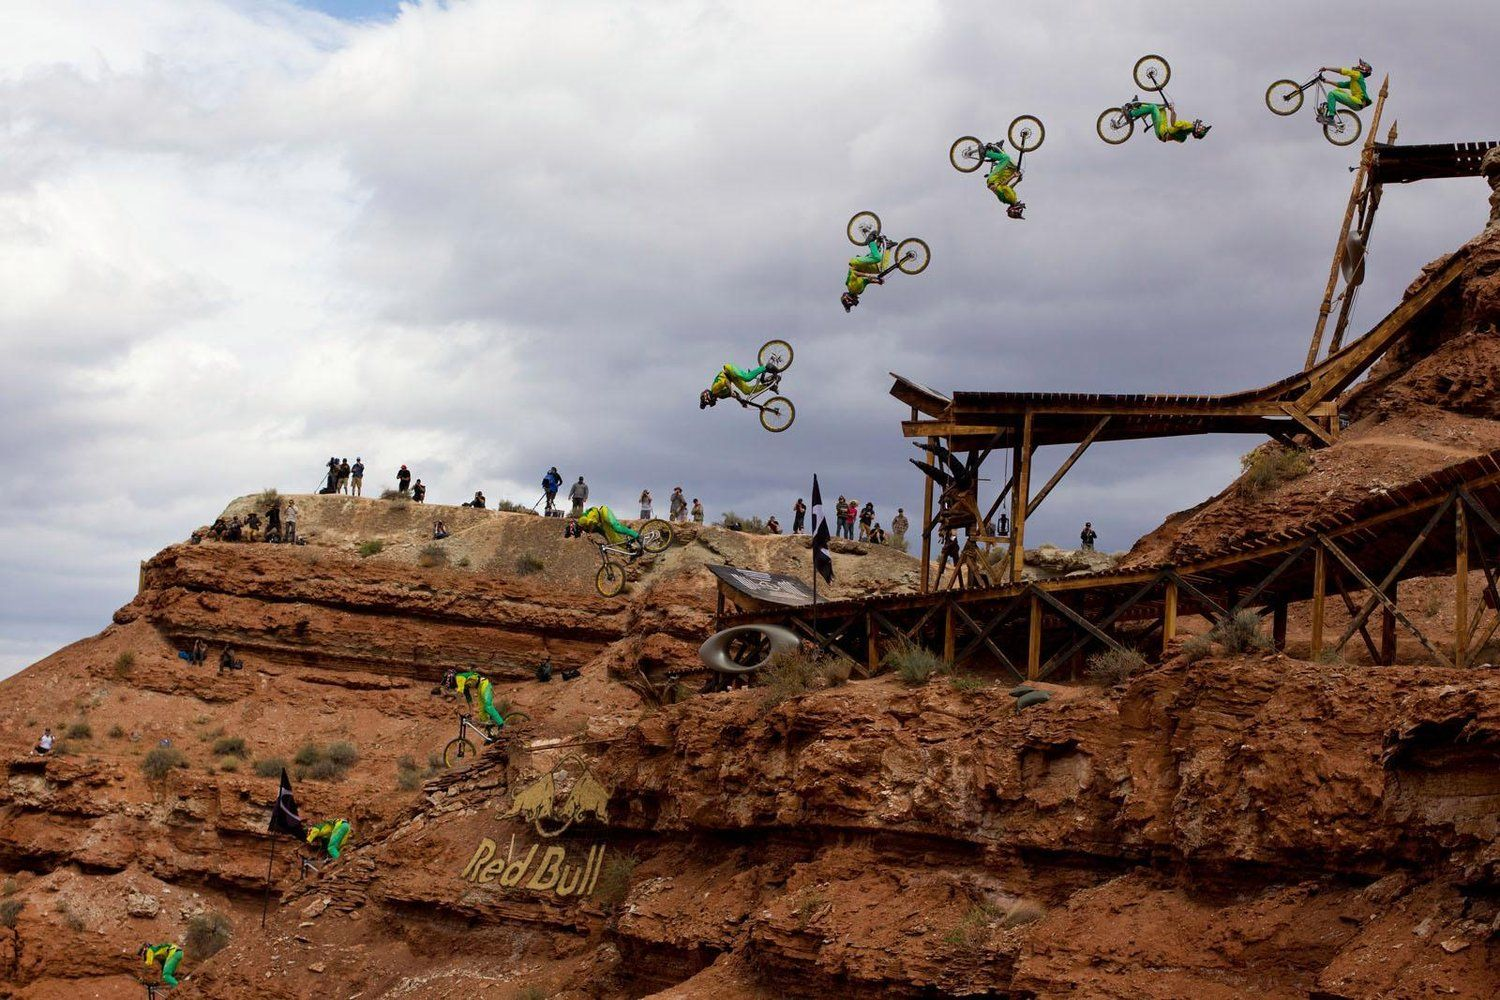 Mountain biker flipping out at Red Bull rampage a bucket List Worthy Sporting Events for Two-Wheel Addicts